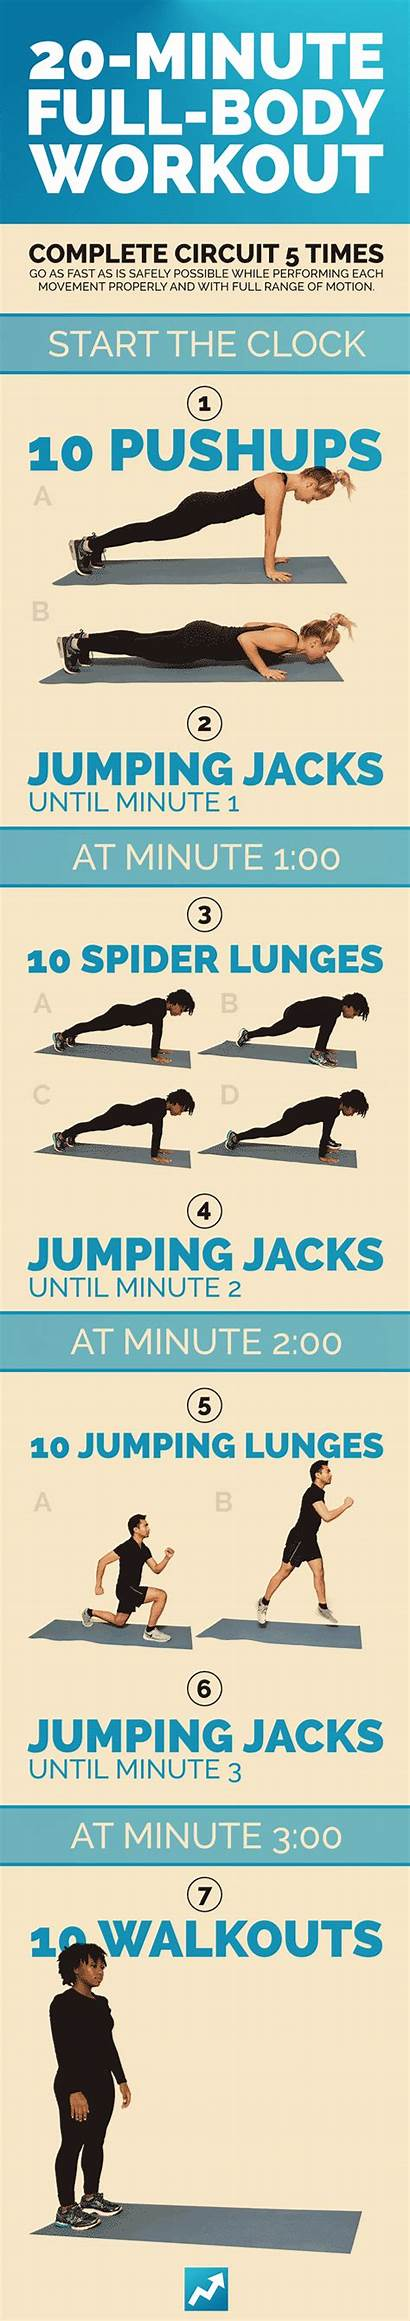 Workout Workouts Quick Minutes